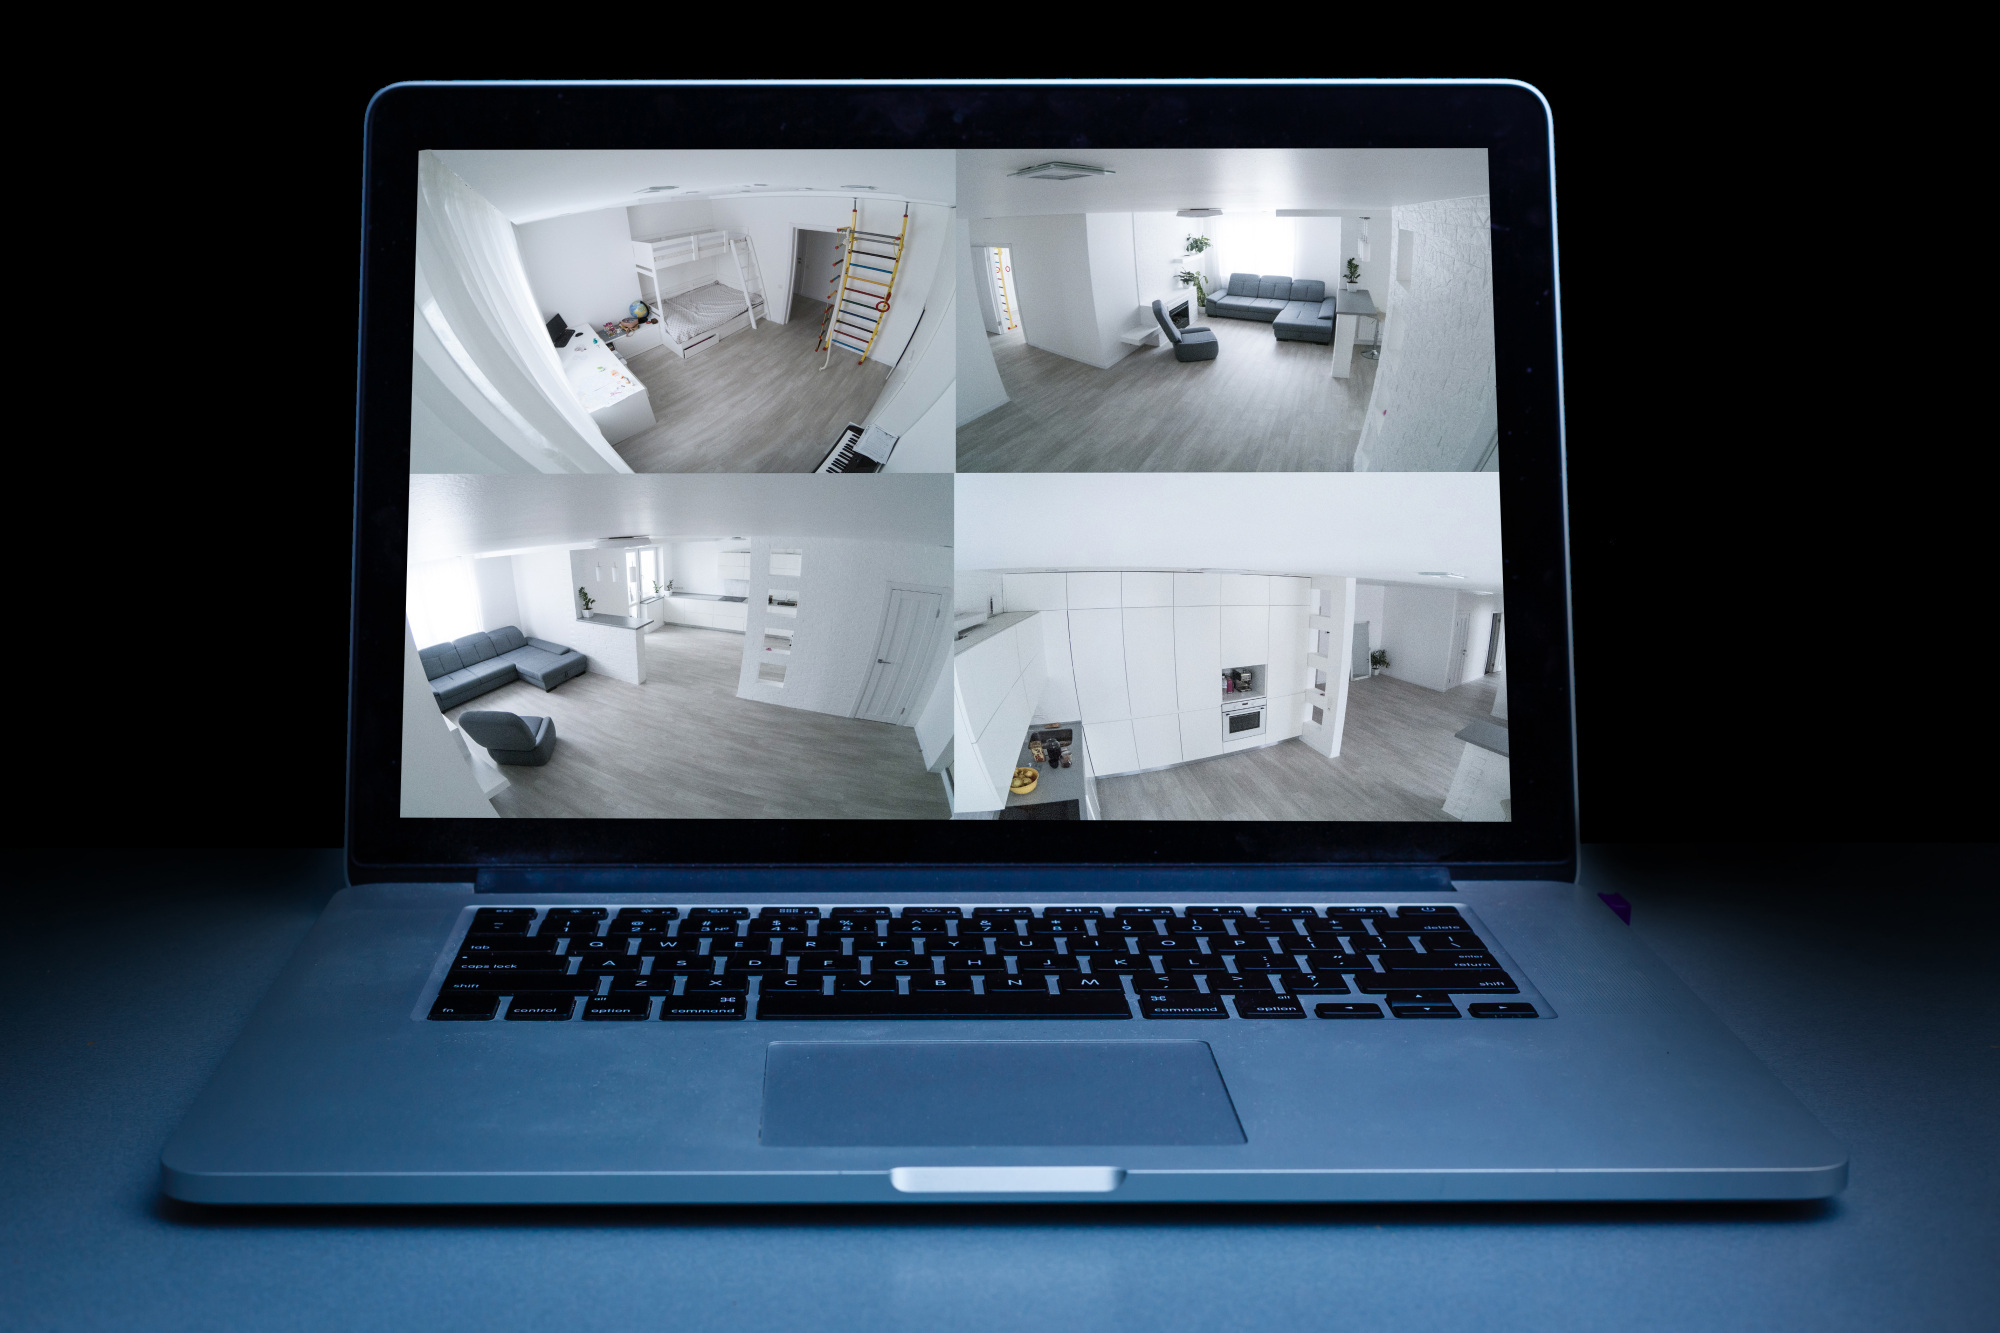 Participants in Project Exograph must agree to have most of their homes — even the toilets — fitted with cameras. They must then trust that the video footage and their identities will never be released without their consent. | GETTY IMAGES